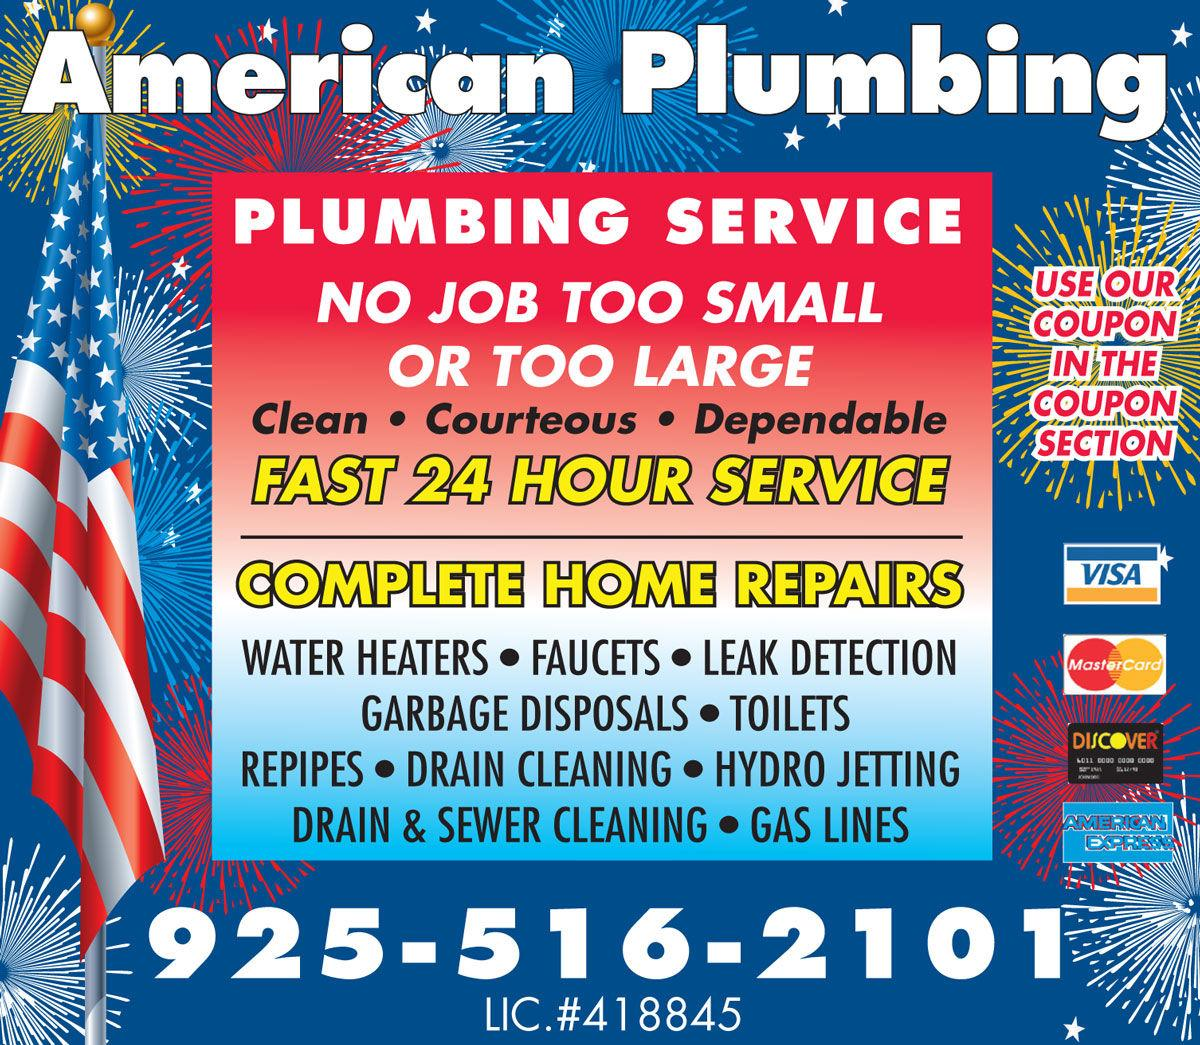 nh portfolio cooling american systems plumbing commercial heating